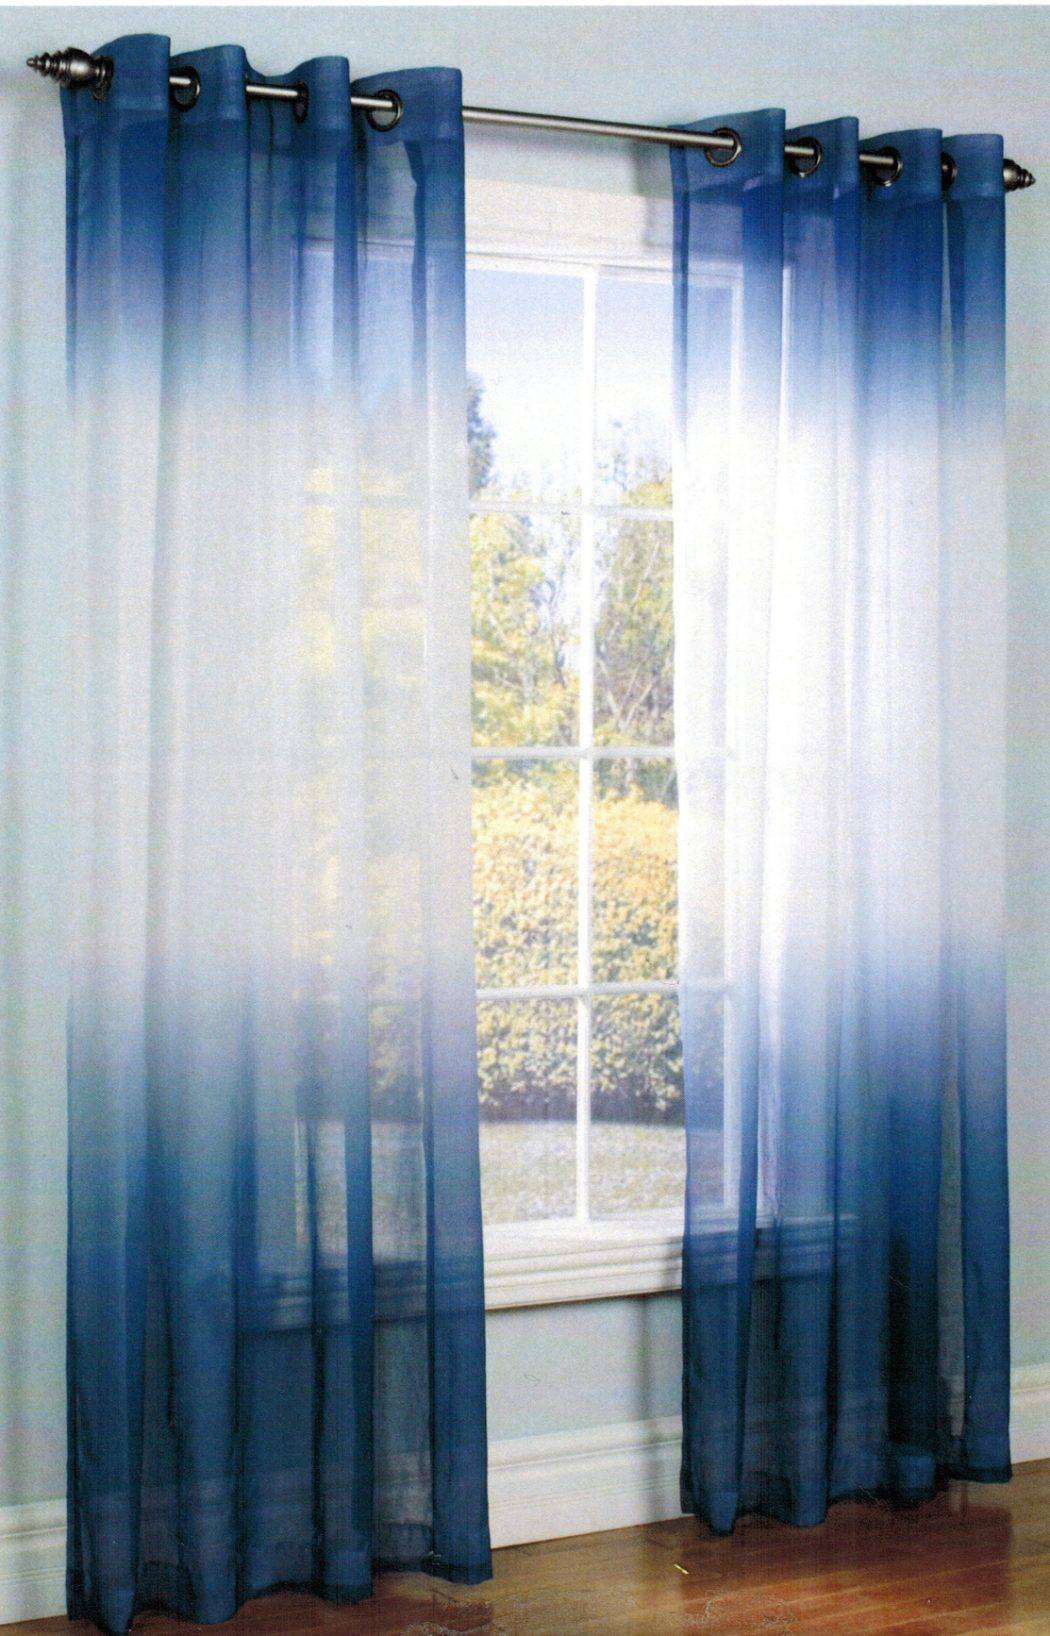 j-ombre-1 20+ Hottest Curtain Design Ideas for 2020